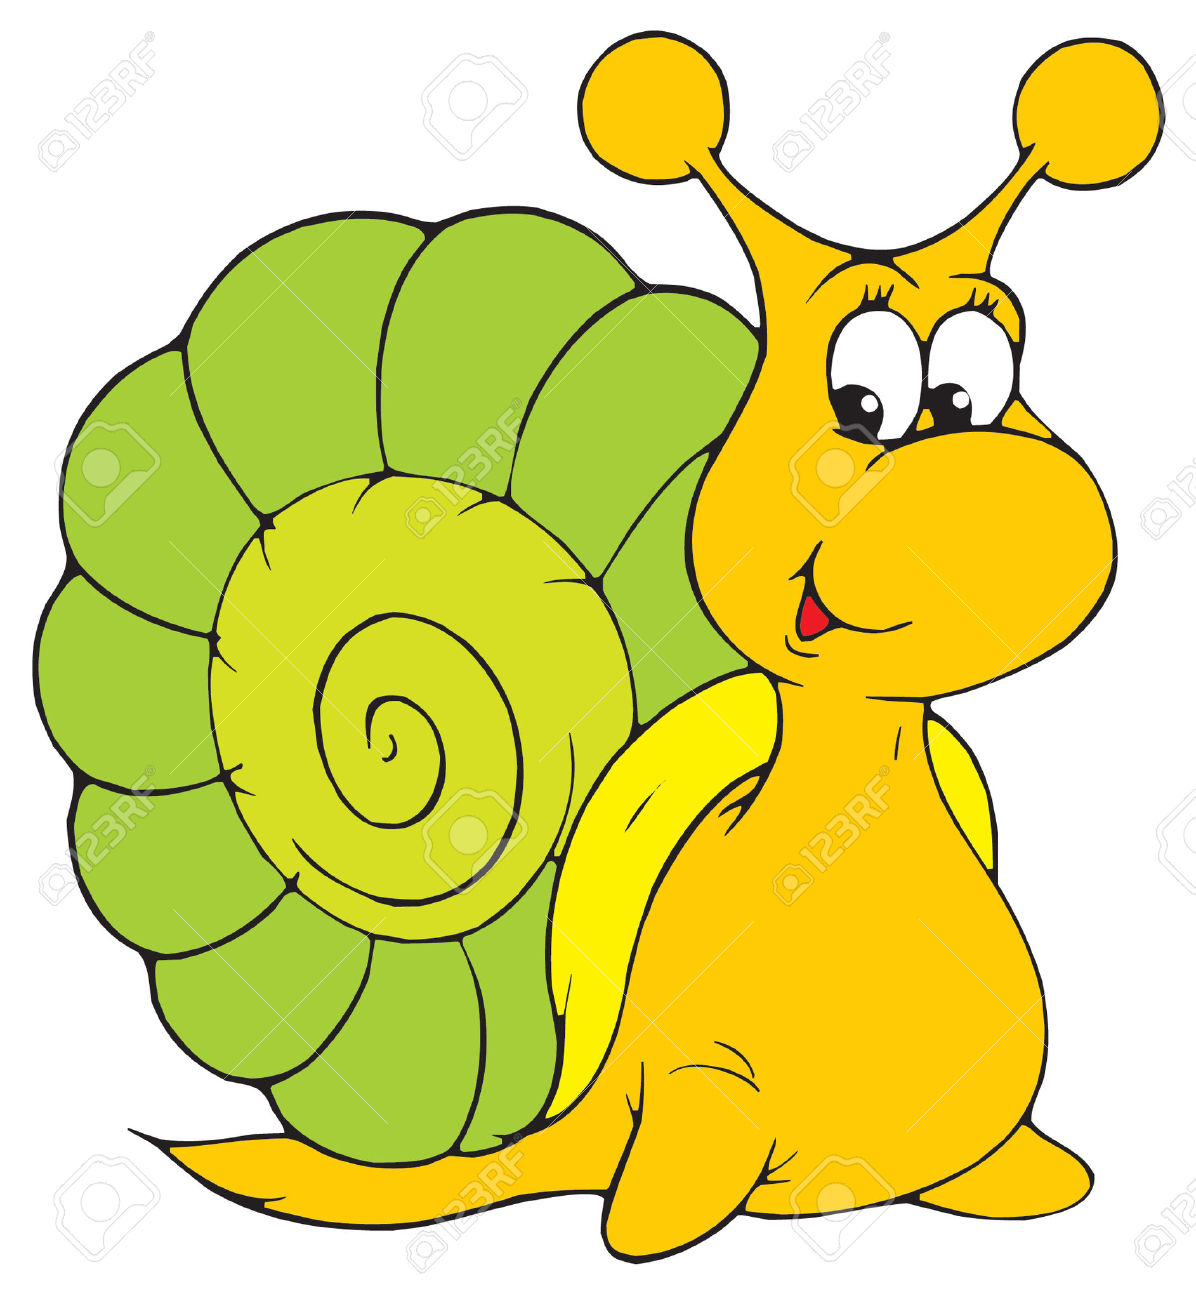 Snail Royalty Free Cliparts, Vectors, And Stock Illustration.